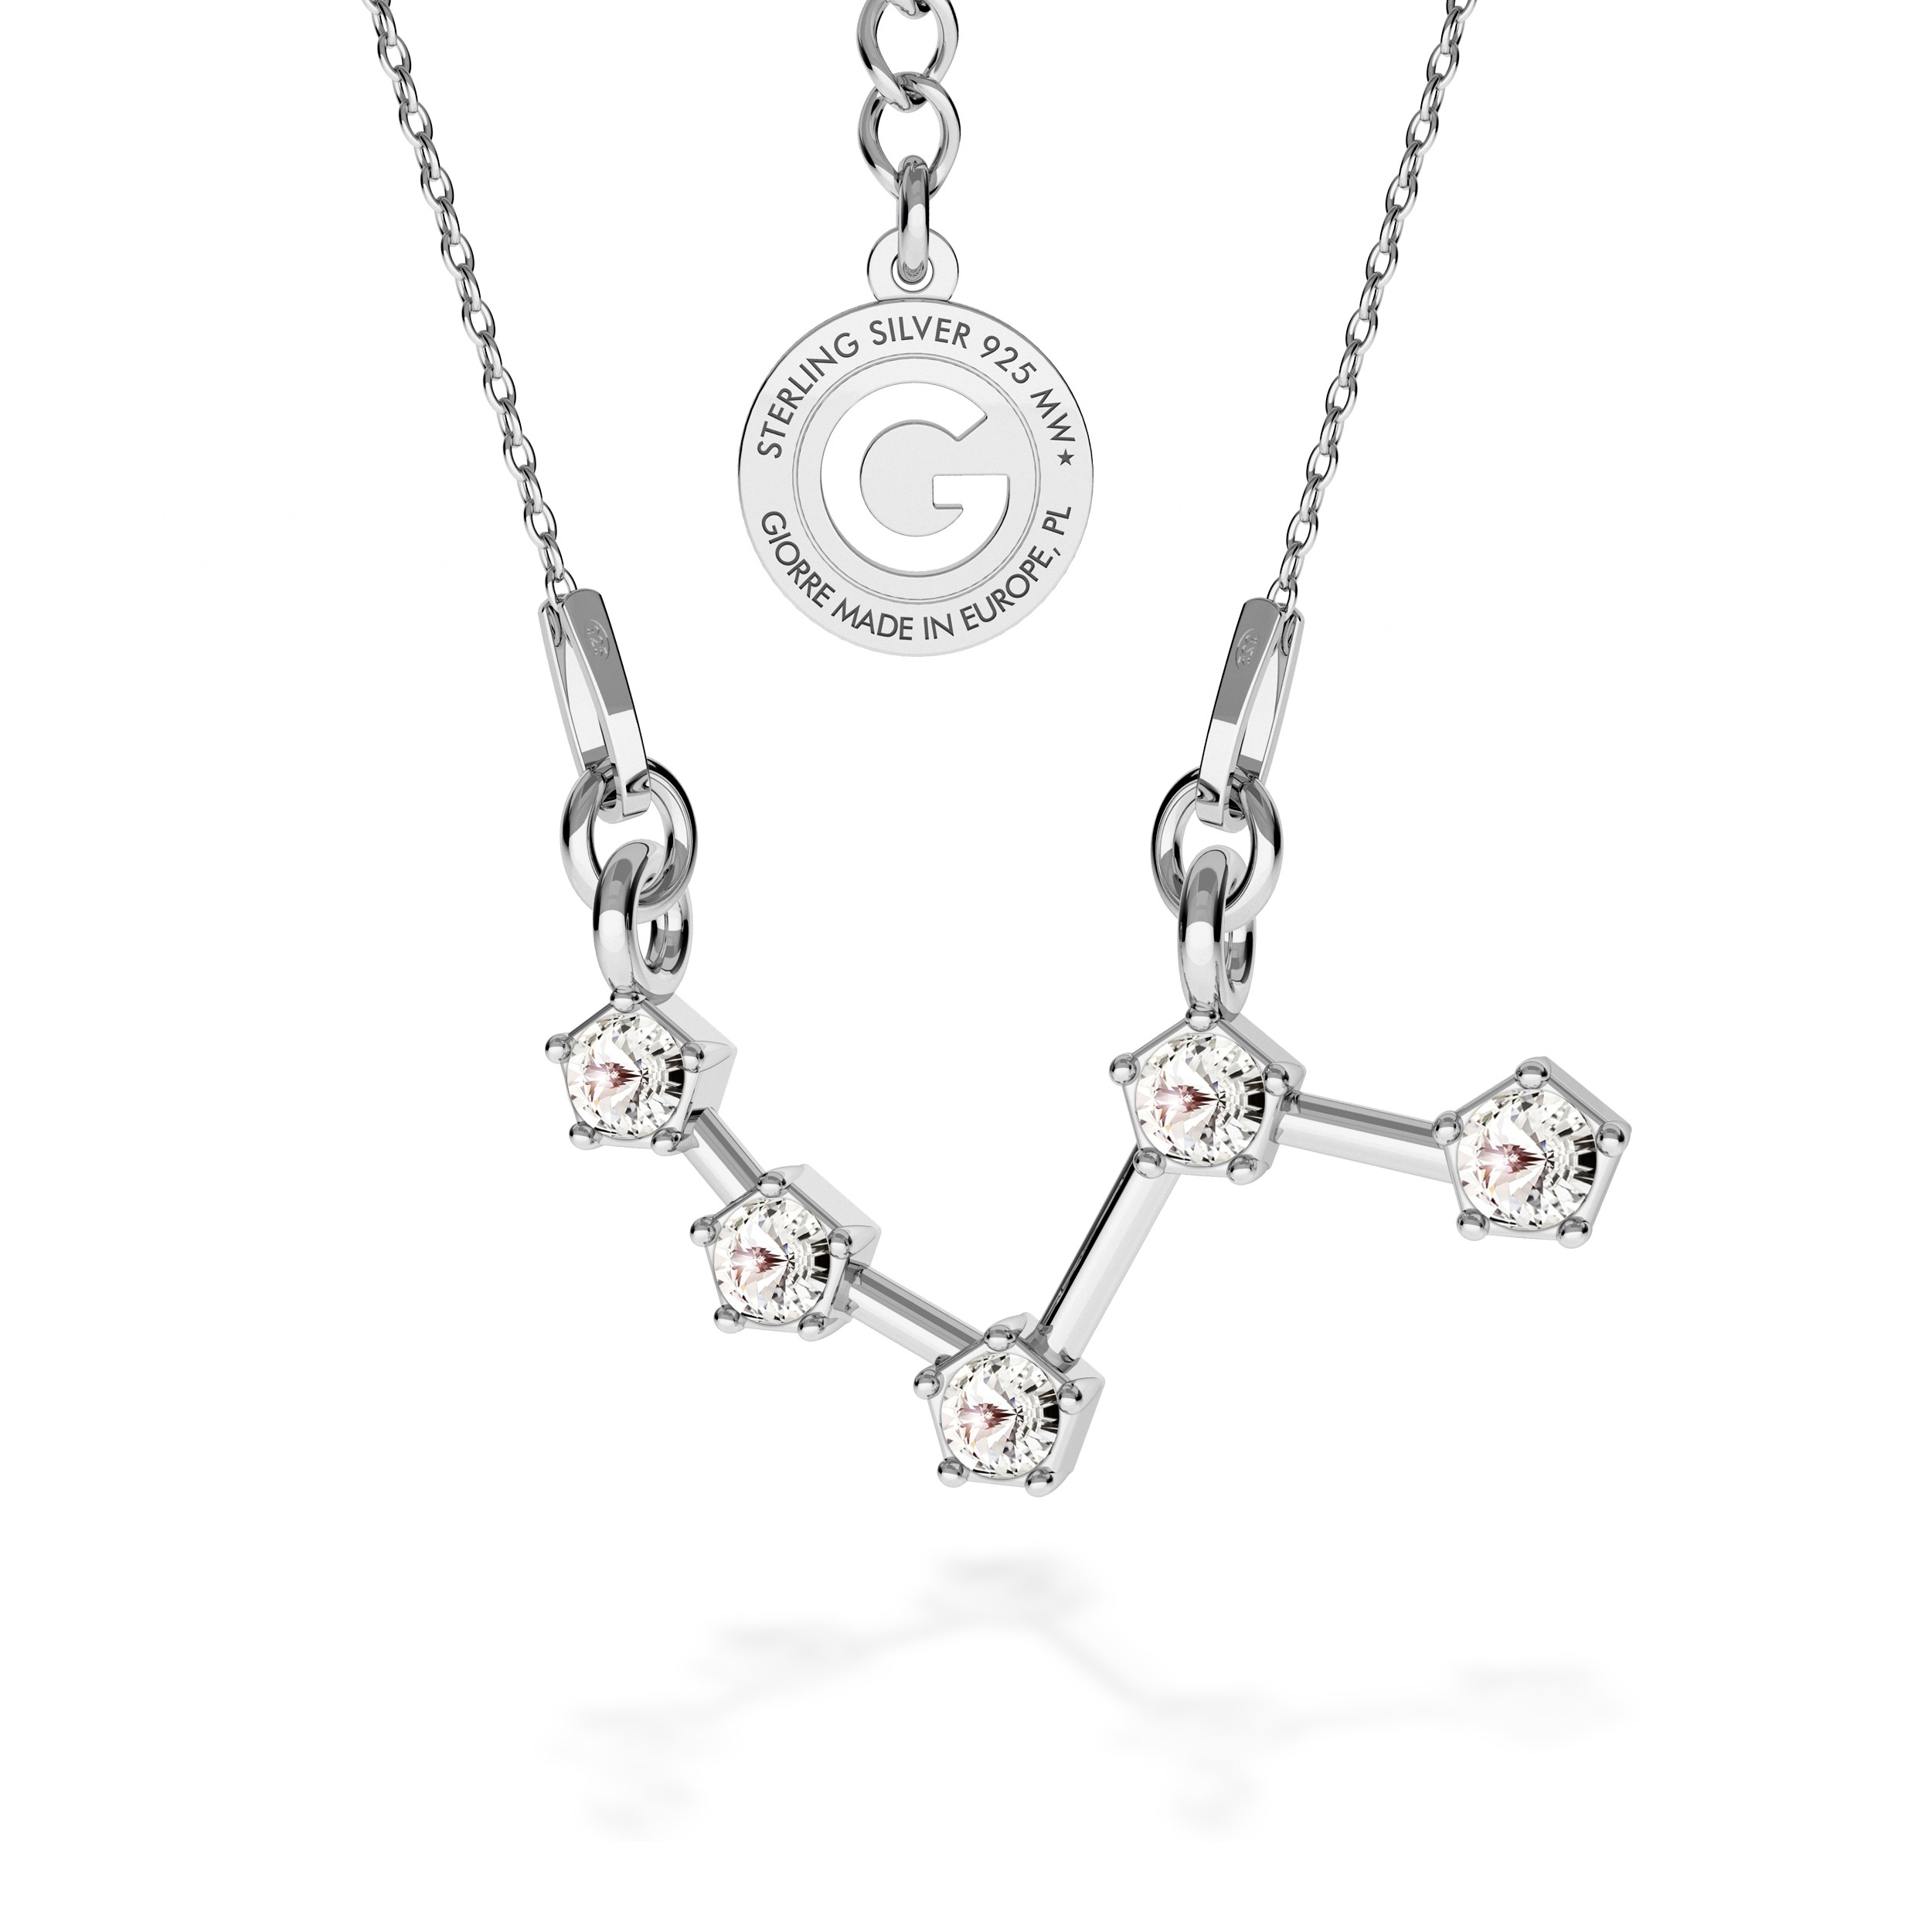 ARIES zodiac sign necklace with Swarovski Crystals silver 925